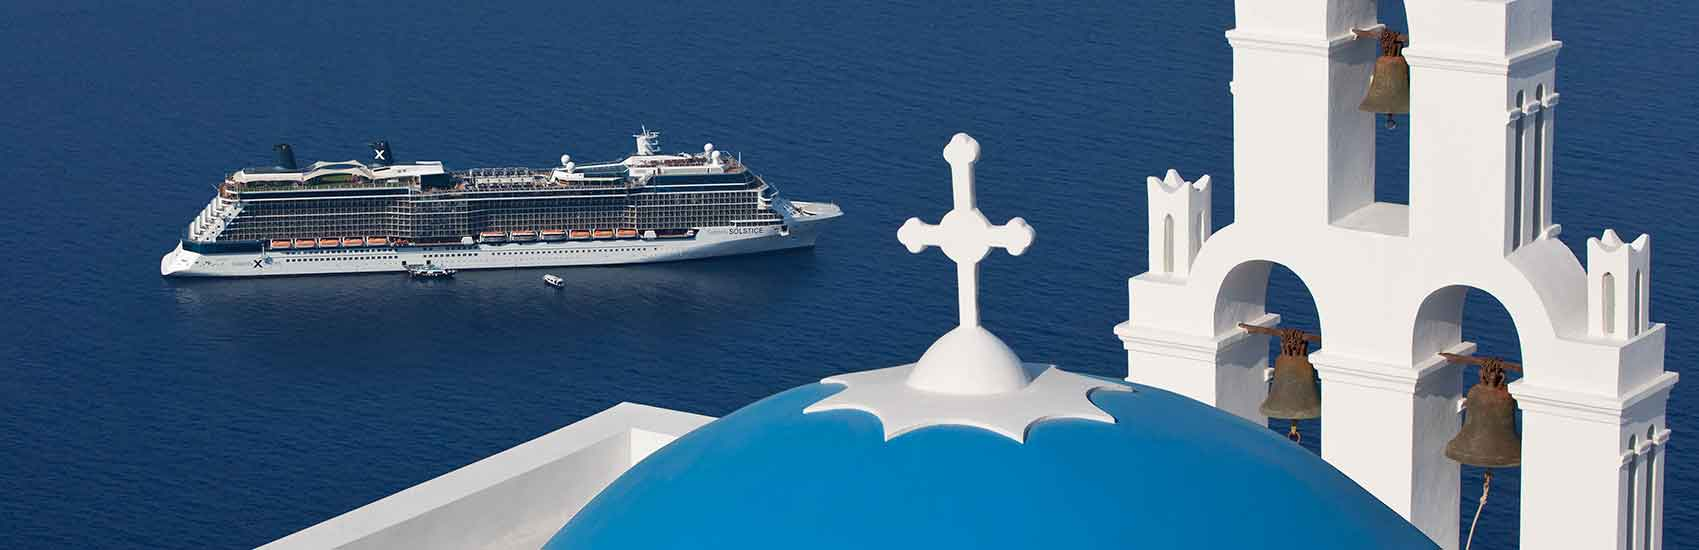 Exclusive Virtuoso Offer with Celebrity Cruises 1